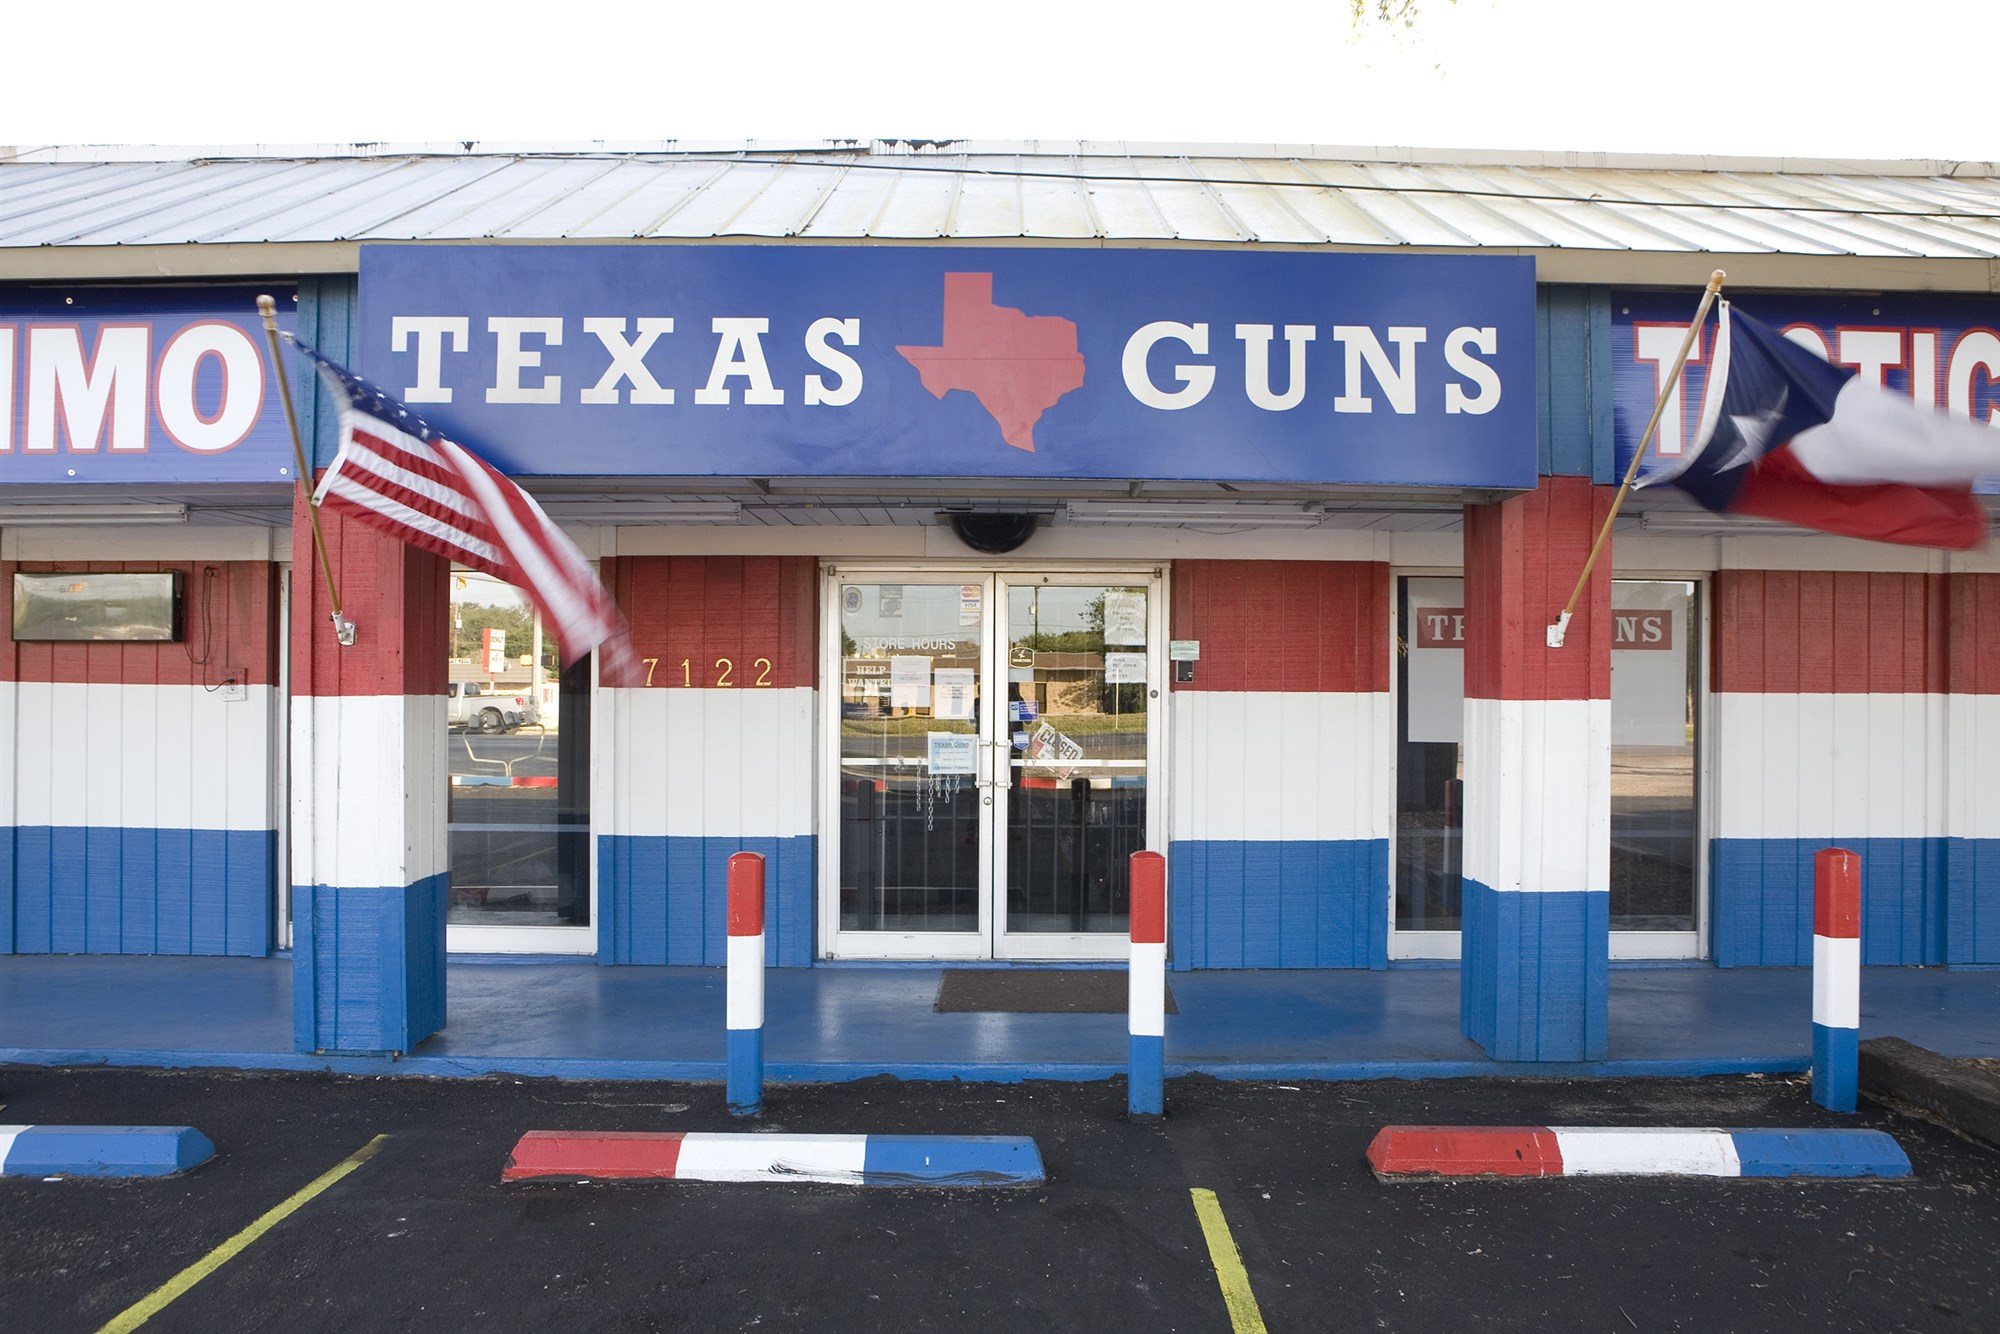 New gun law in Texas makes it easier to store and carry firearms - gun news.